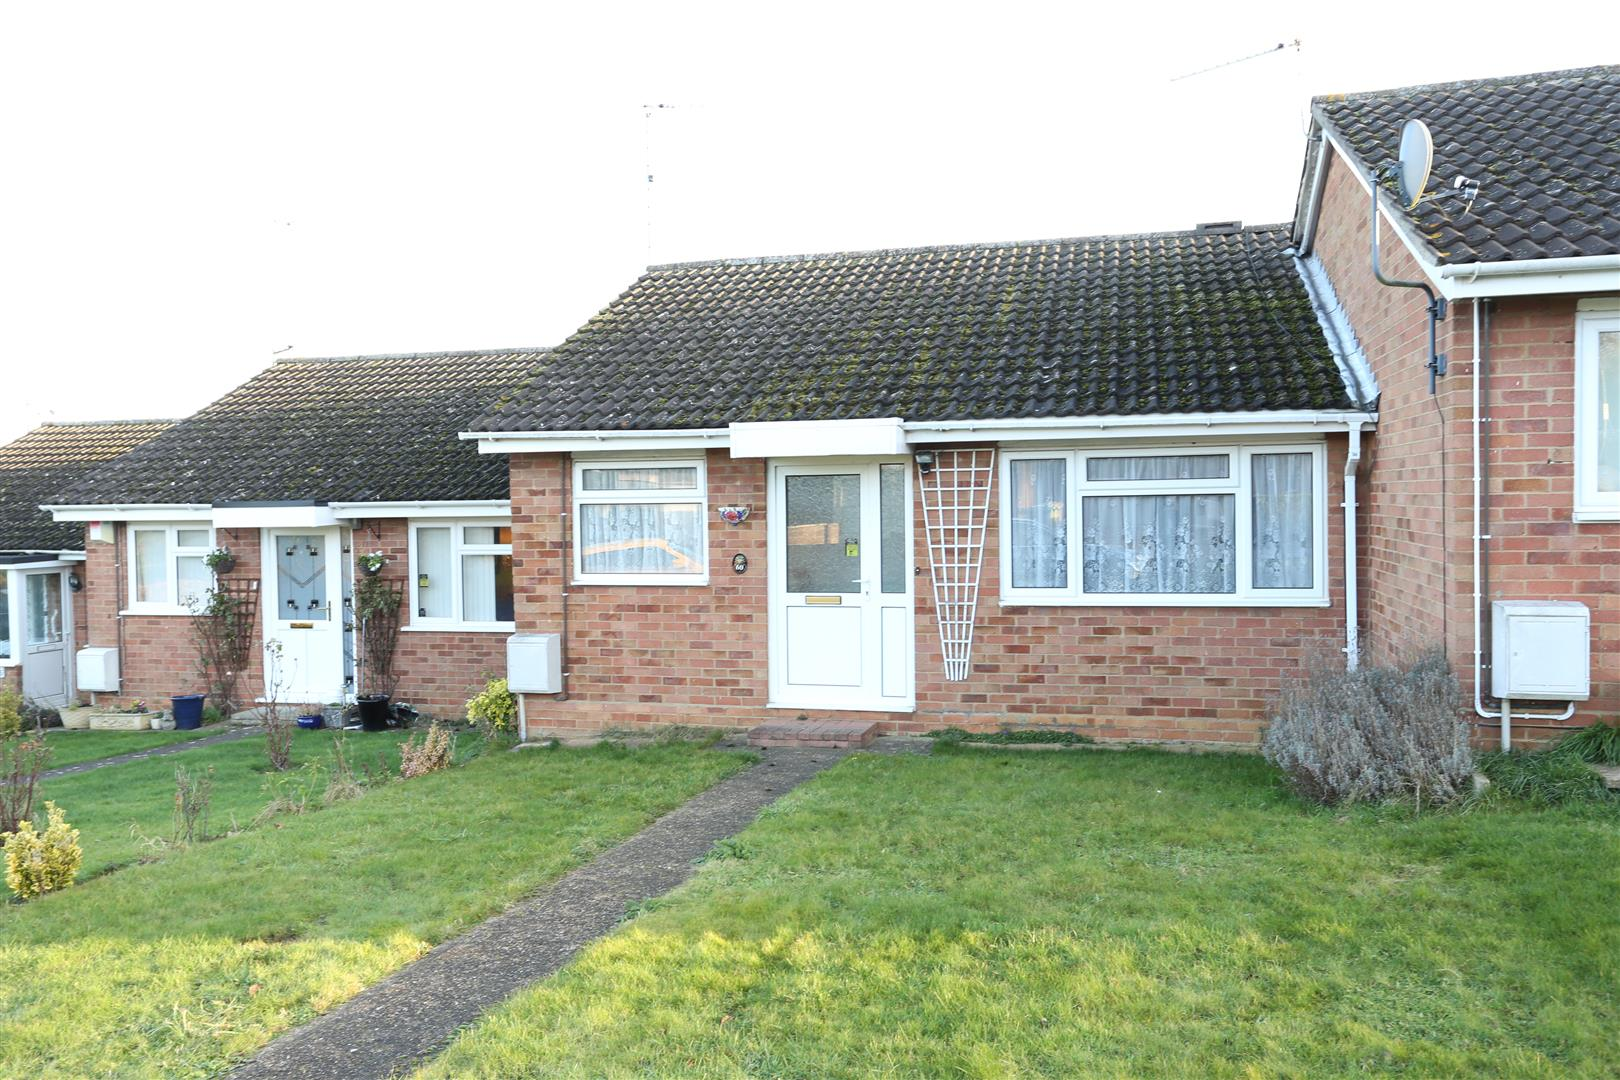 2 Bedrooms Terraced House for sale in Roche Way, Wellingborough